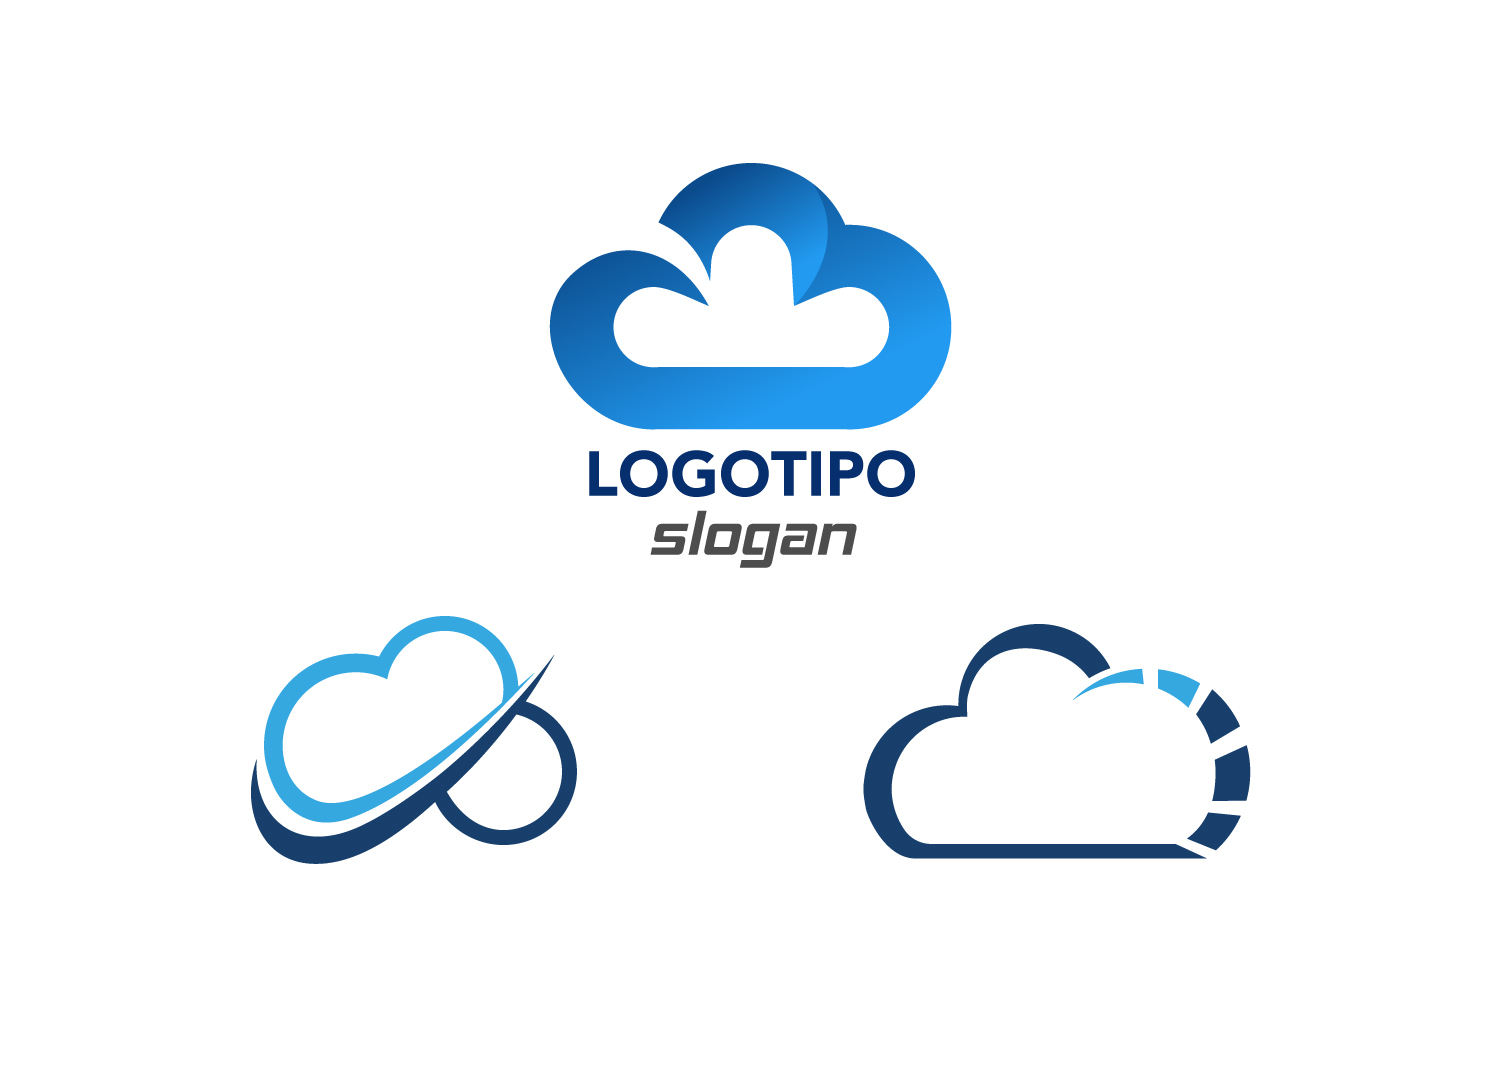 logotipos de nube copias stock